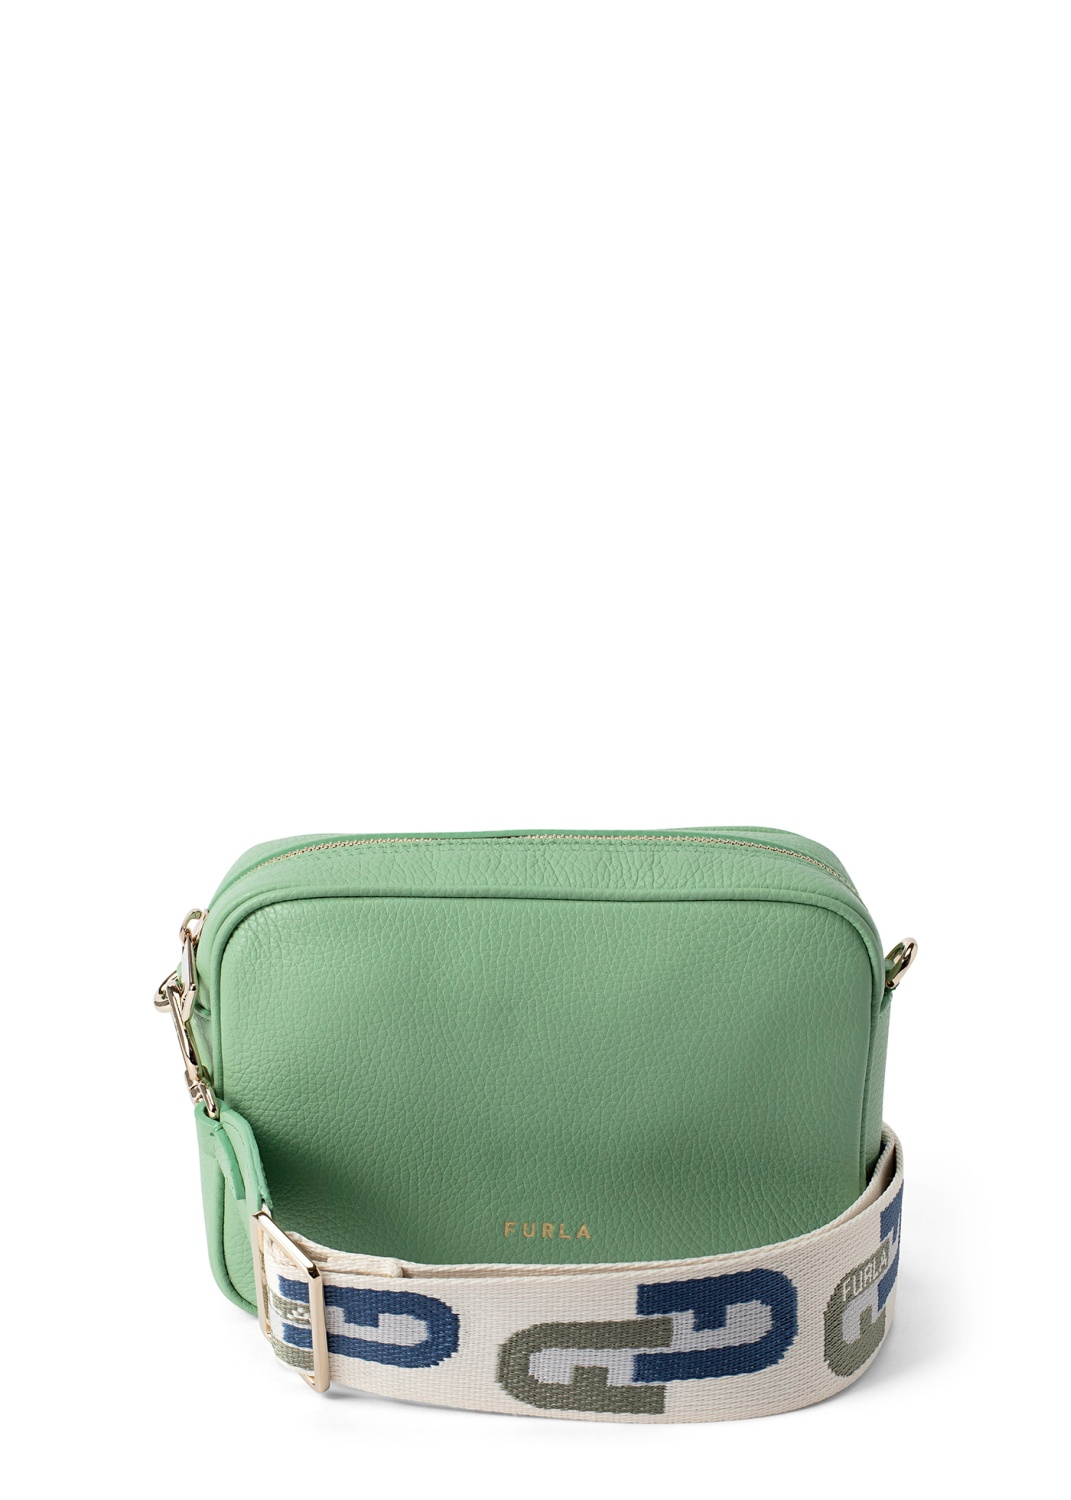 FURLA REAL MINI CAMERA CASE image number 0